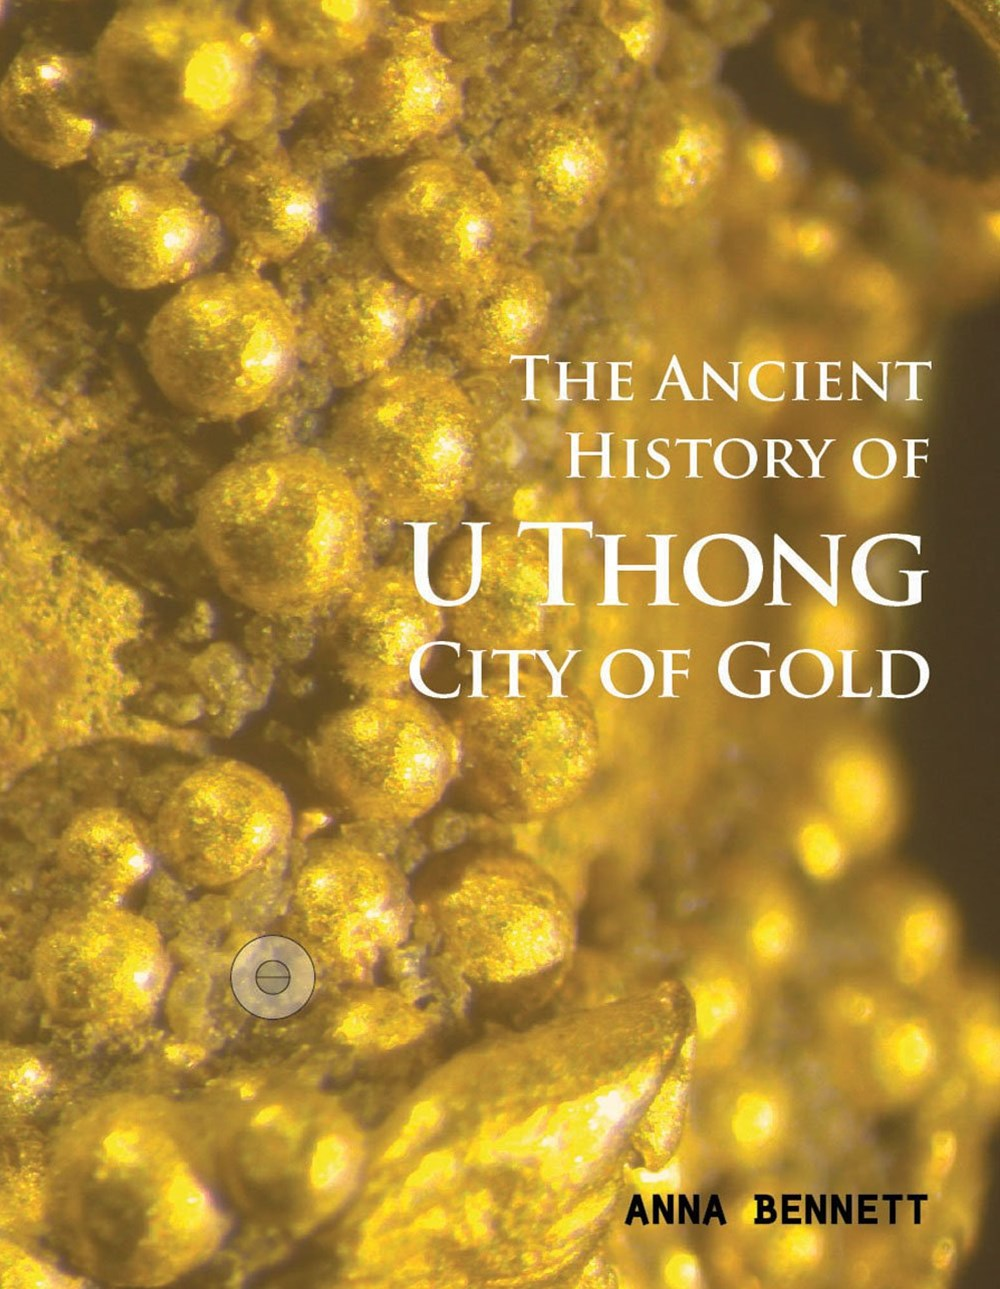 U Thong City of Gold: The Ancient History